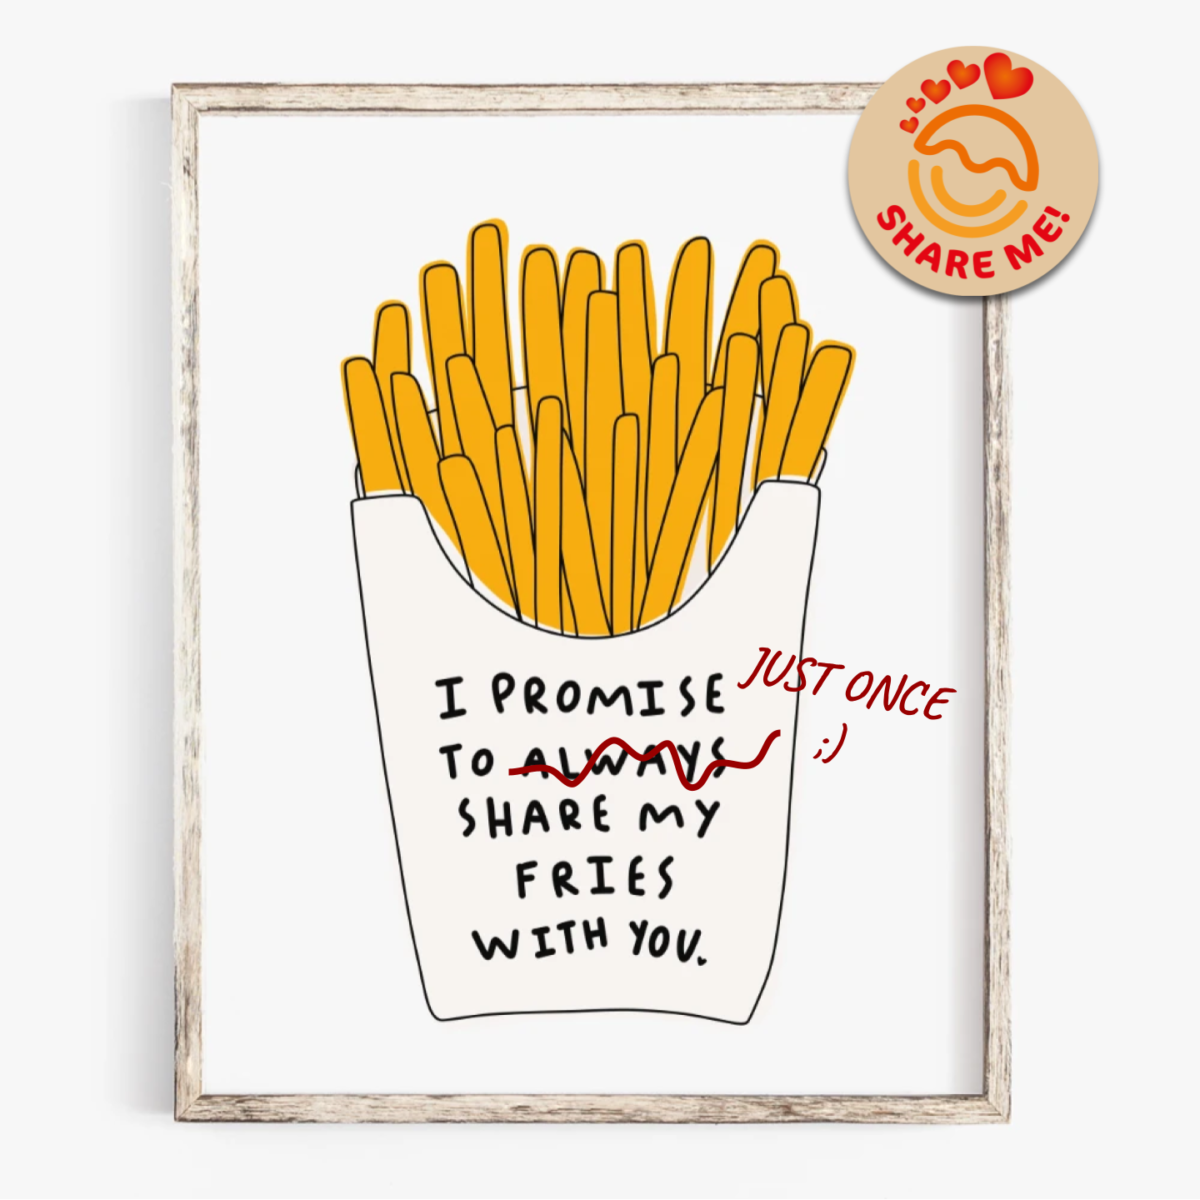 I promise to share my fries with you :)